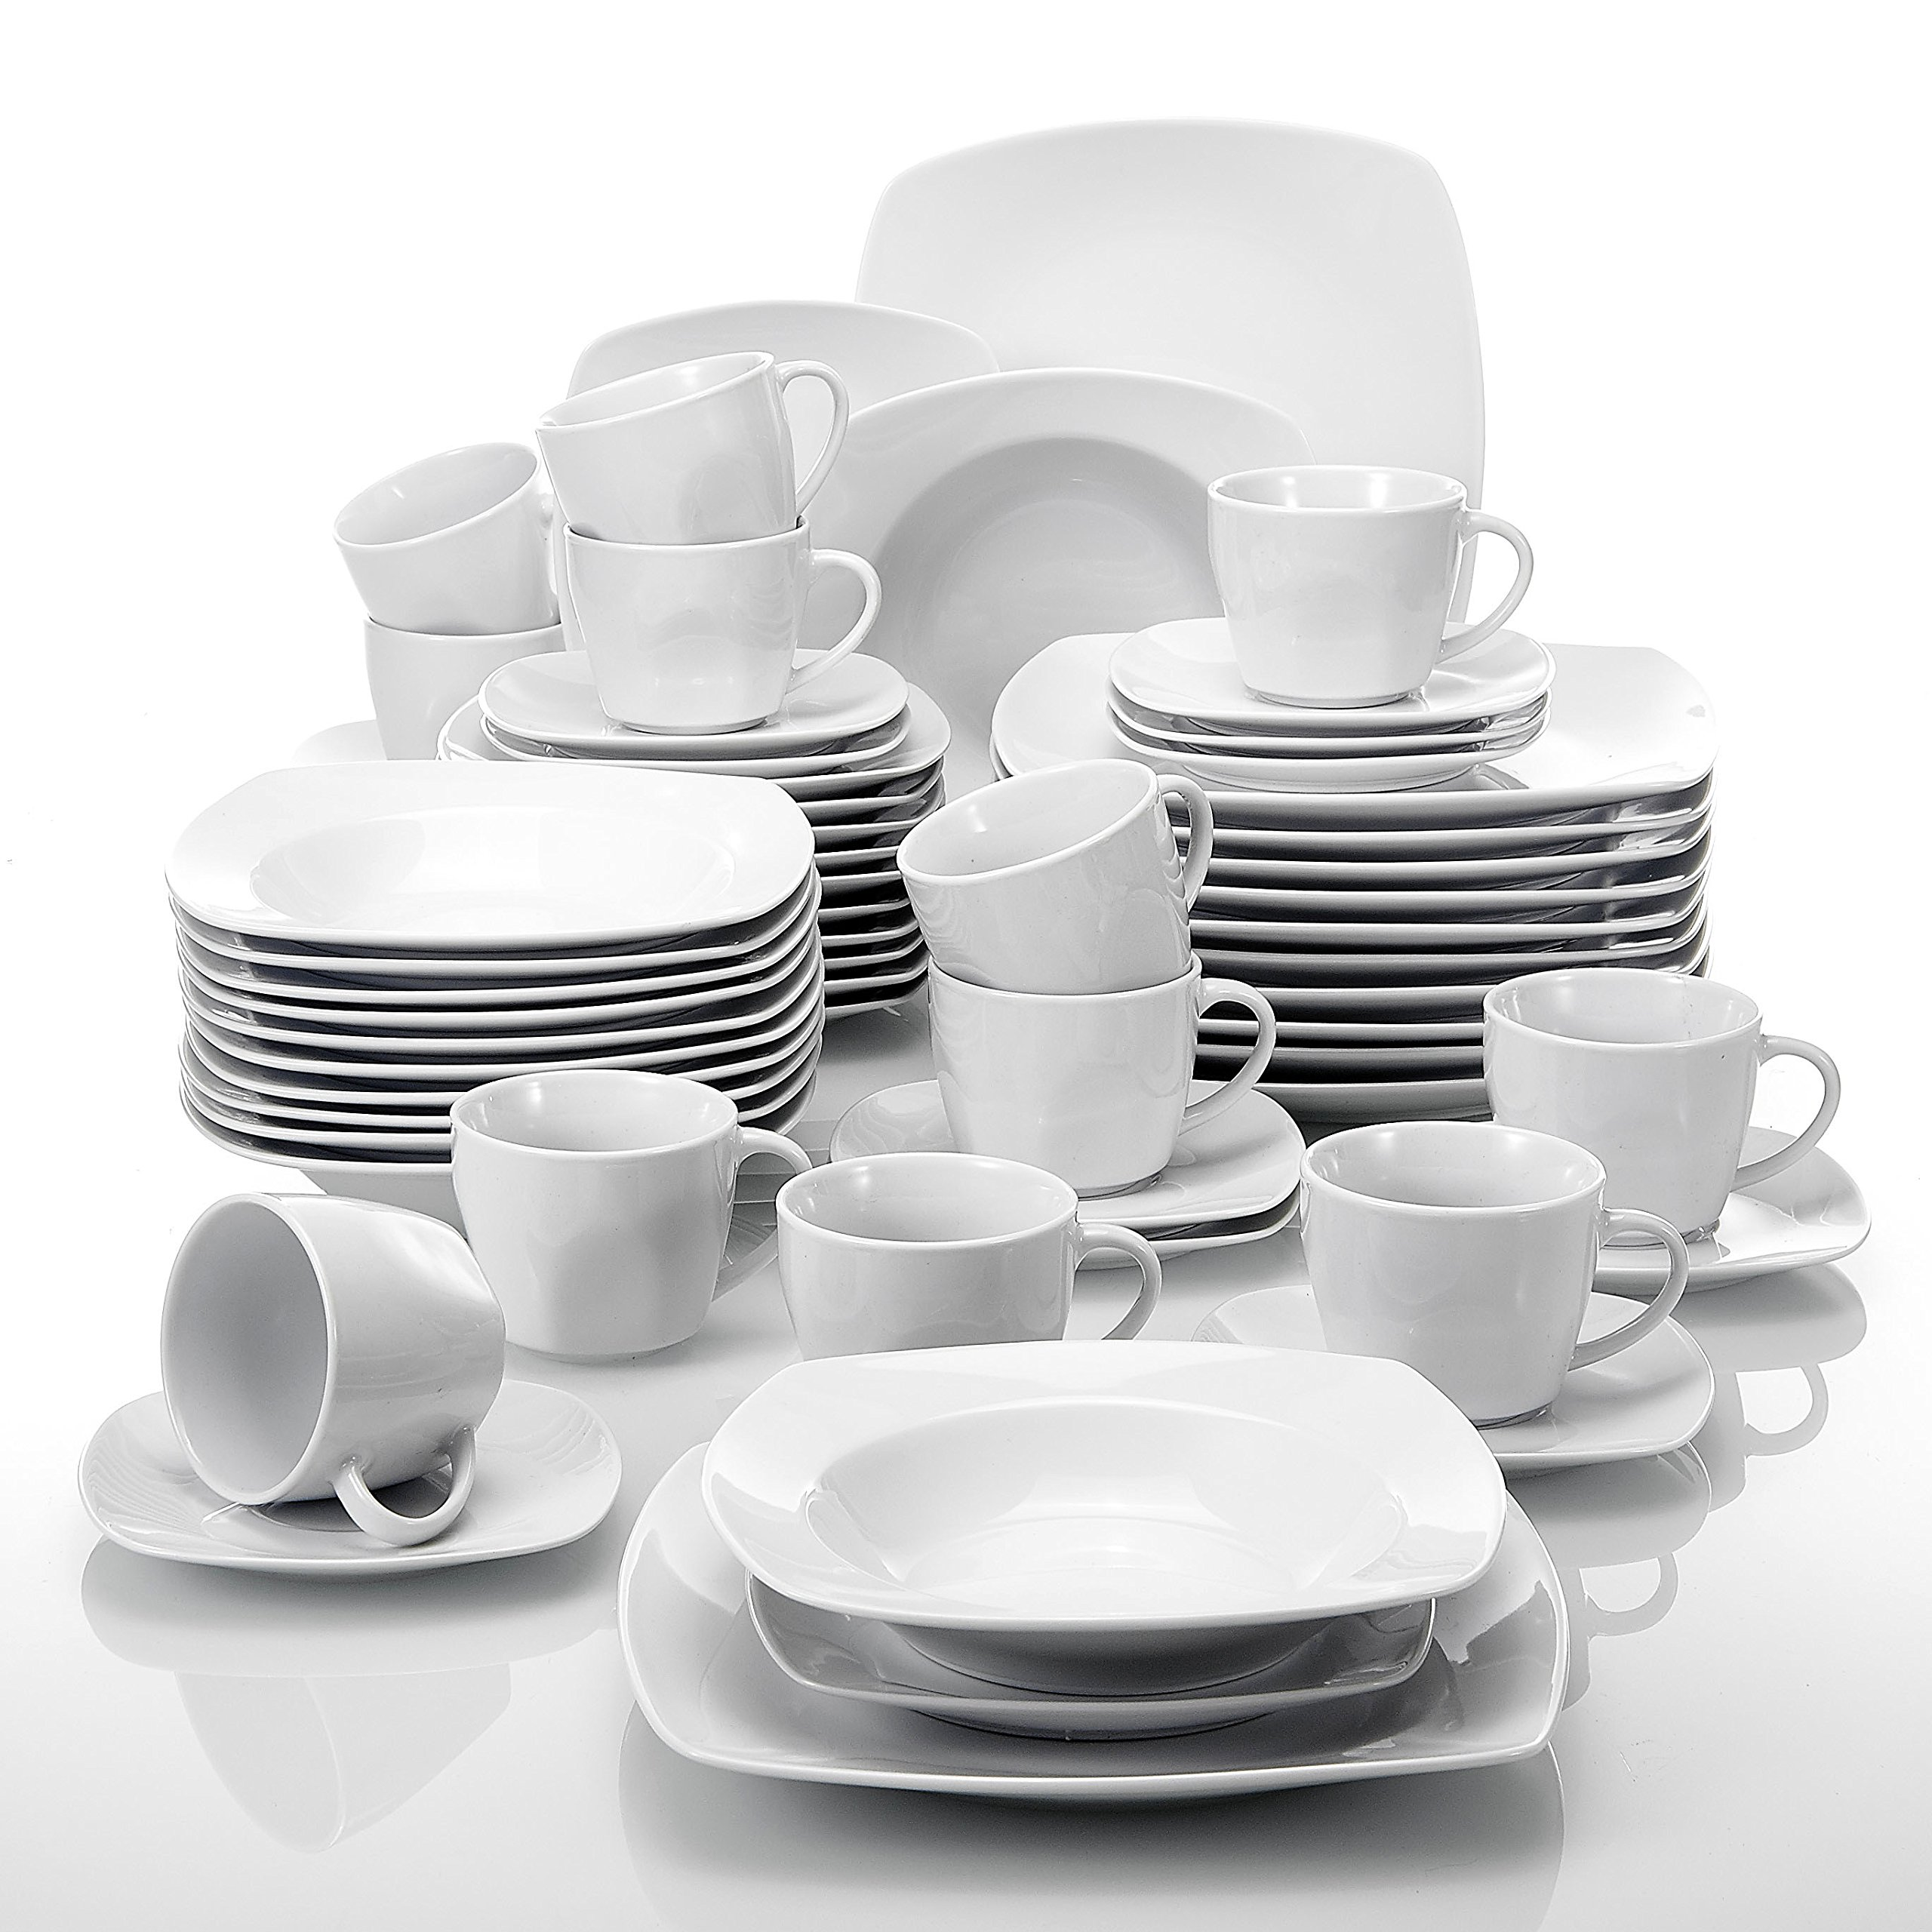 Malacasa, Series Julia, 60-Piece Ivory White Porcelain Tabletop Dinnerware Sets of 12-Piece Cups, 12-Piece Saucers, 12-Piece Dessert Plates, 12-Piece Soup Plates and 12-Piece Dinner Plates